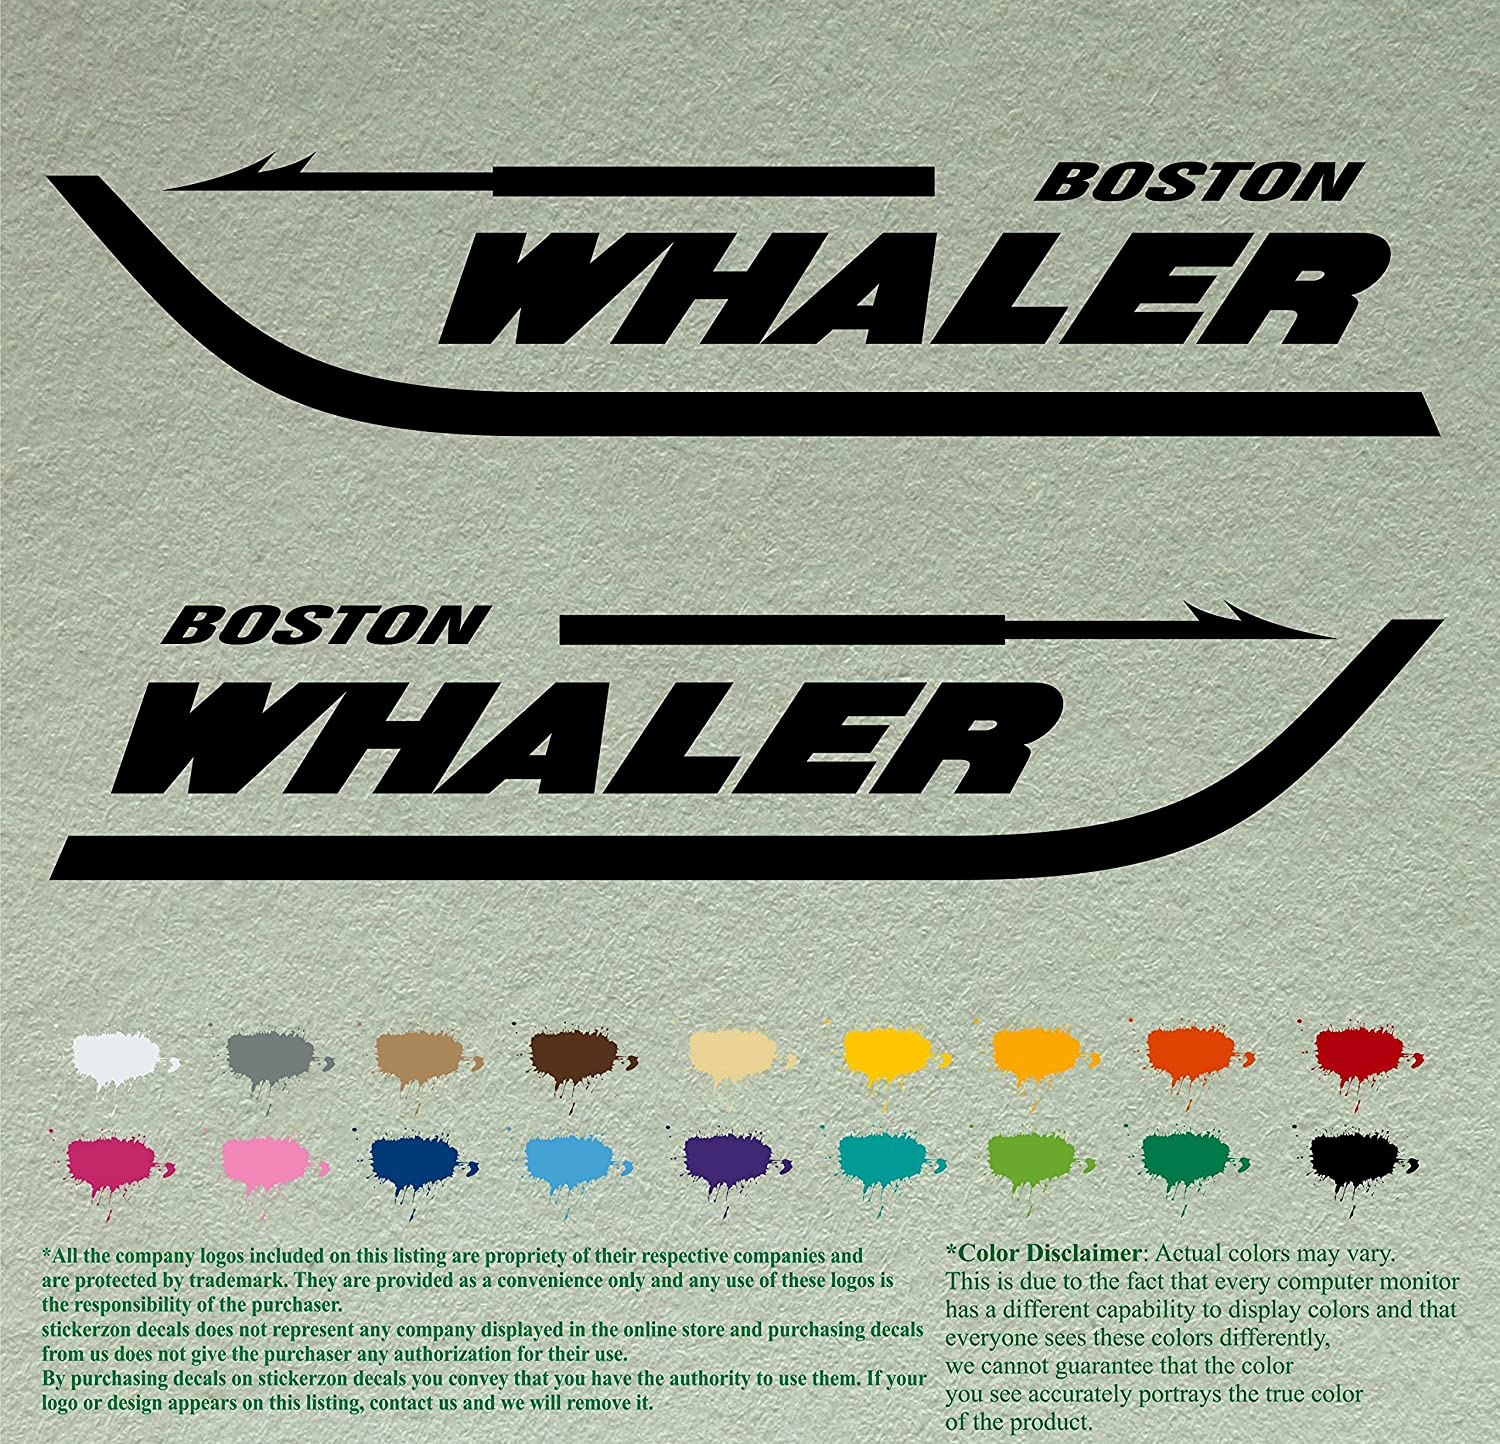 Pair of Boston Whaler We OFFer at cheap prices Boats SALENEW very popular! Decals Stickers Boat Vinyl Outboards